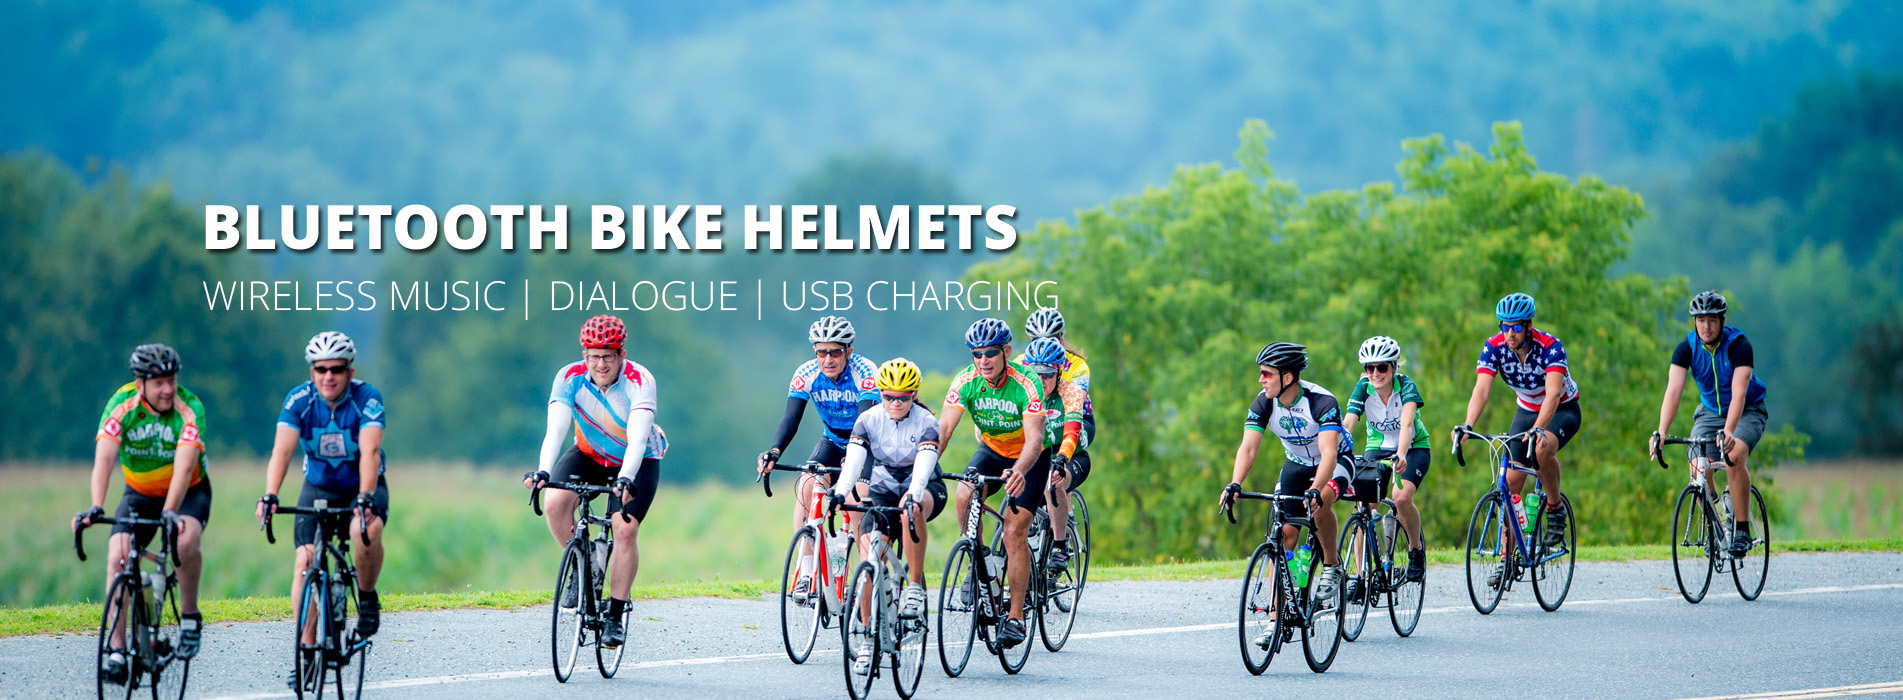 smart bike helmet R8 banner